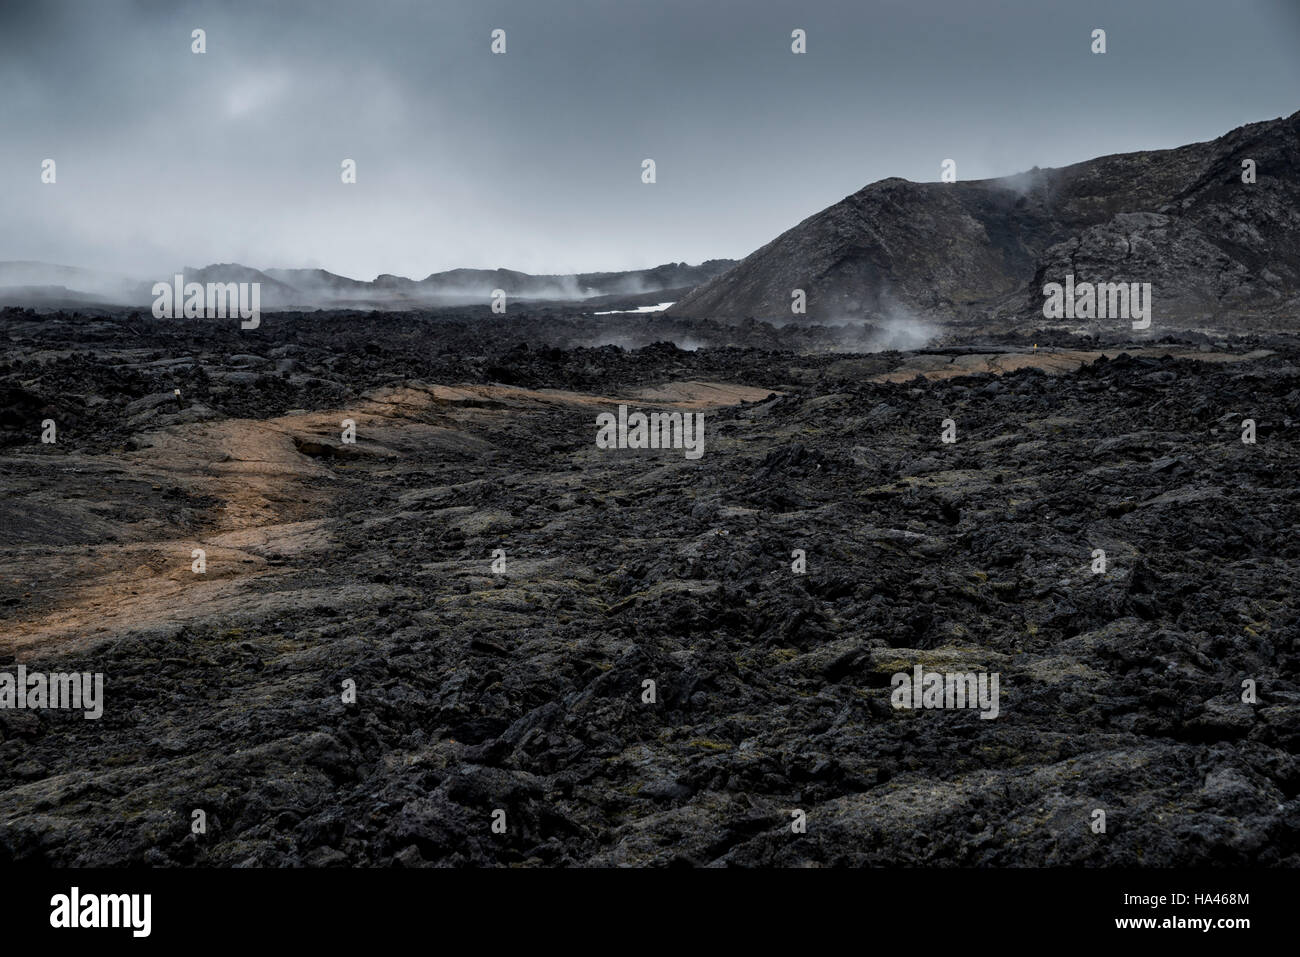 Bright path through the black smoking lava field in Iceland - Stock Image